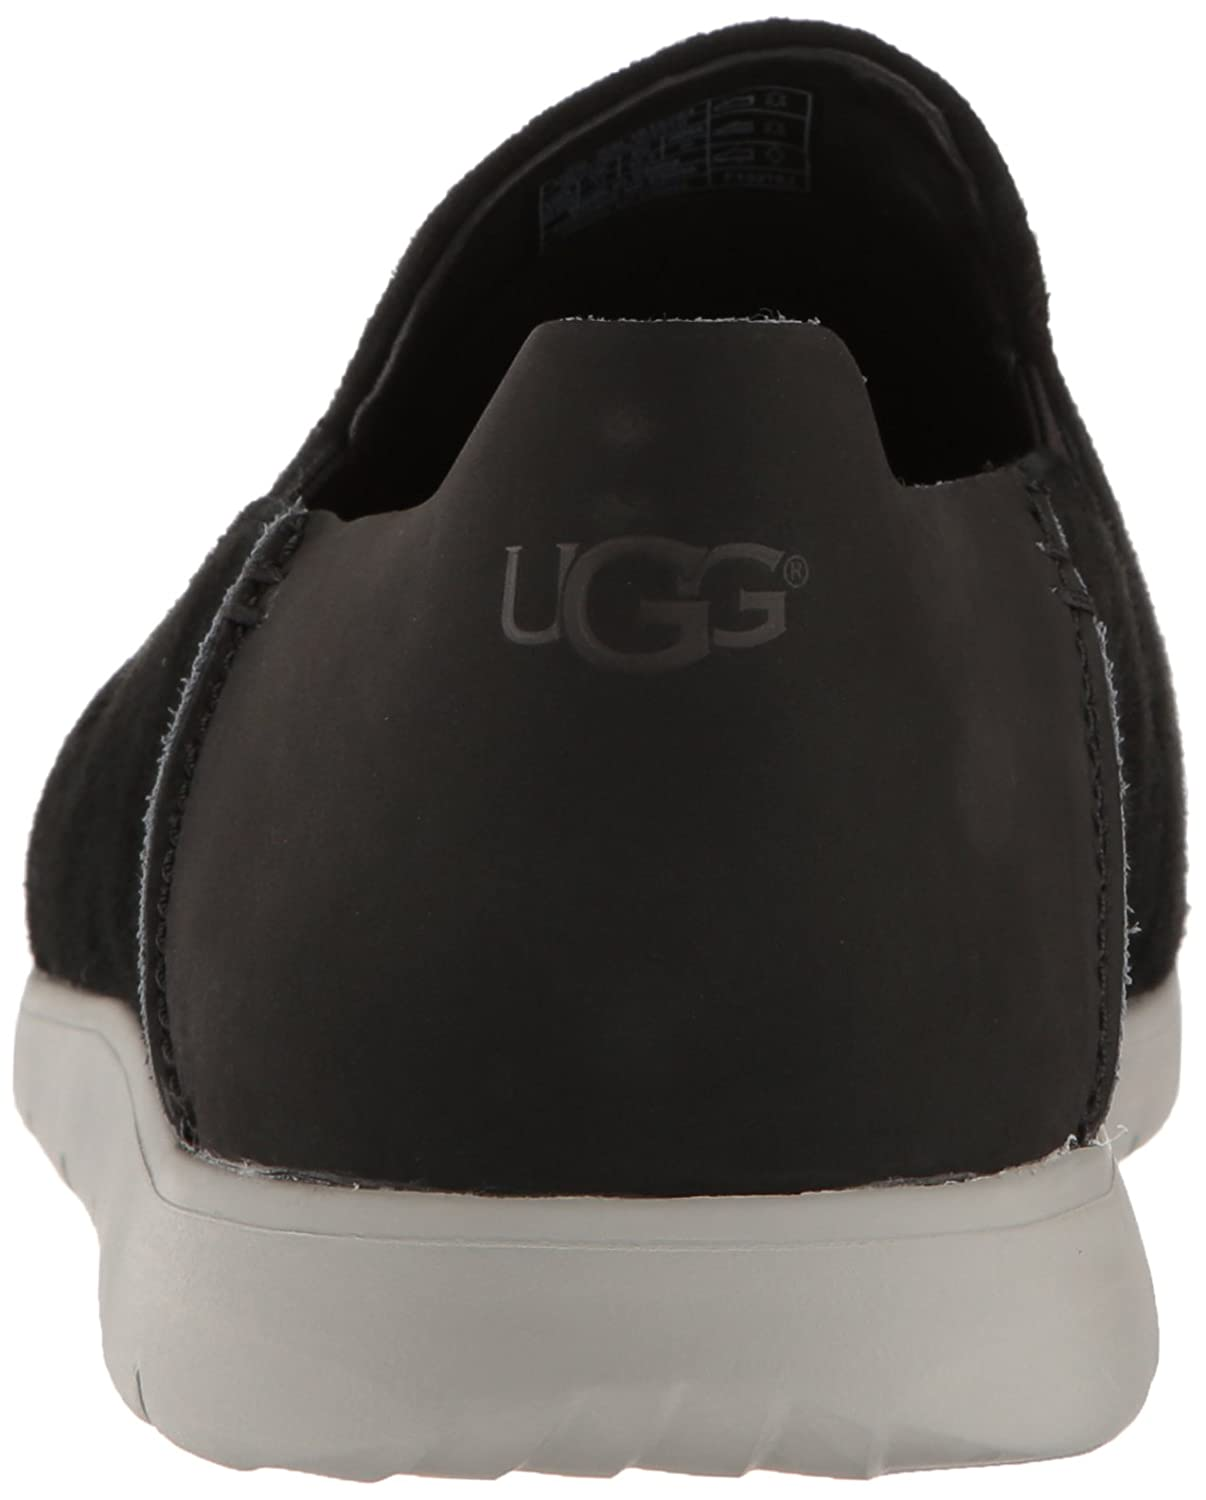 6ea5a14d002 UGG Men's Knox Fashion Sneaker